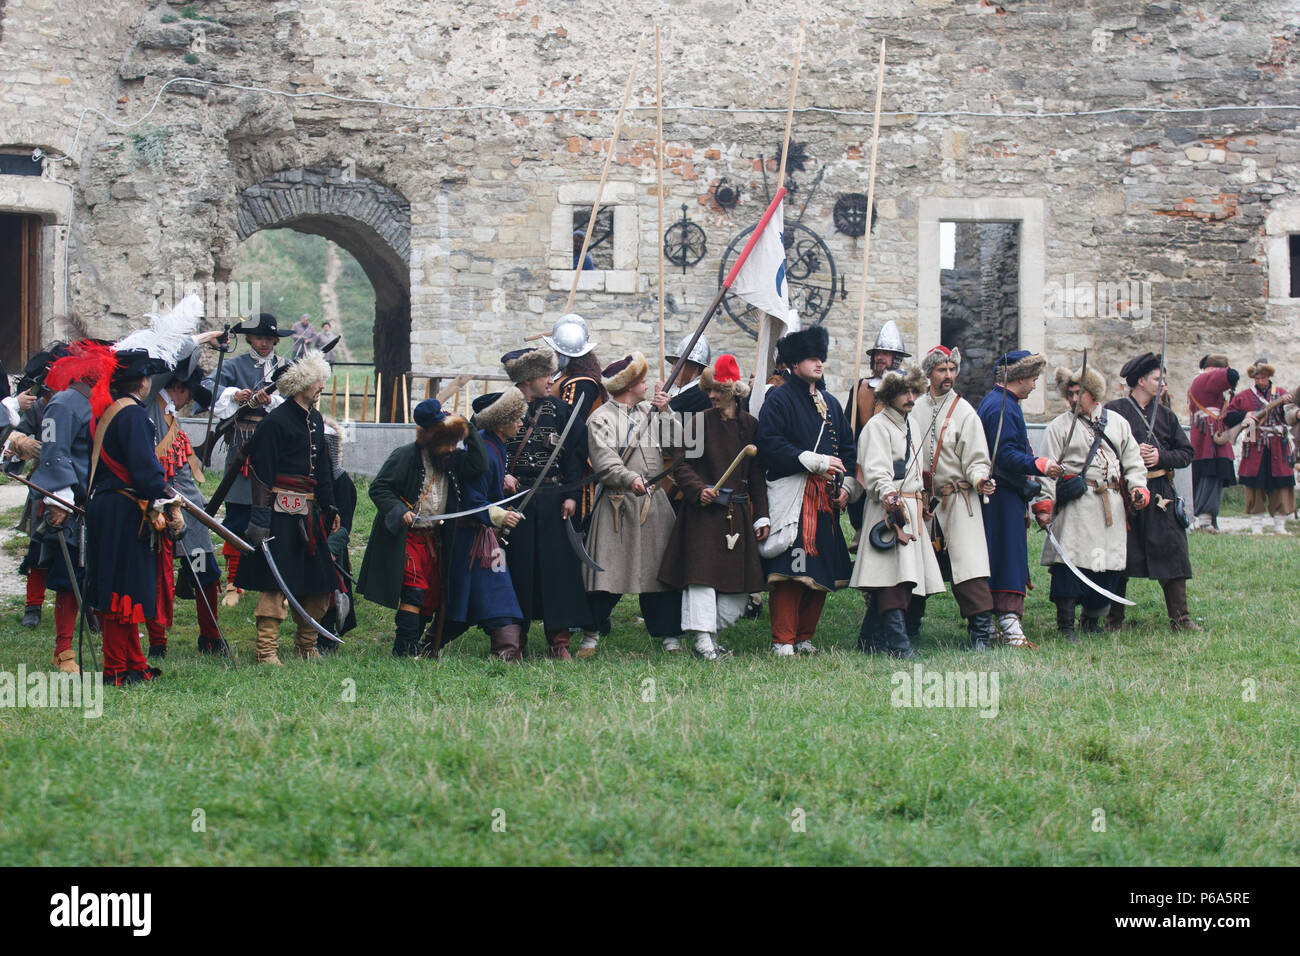 KAMYANETS-PODILSKY, UKRAINE - SEPTEMBER 26, 2010: Members of history club wear historical uniform 17 century during historical reenactment. The ukrain - Stock Image